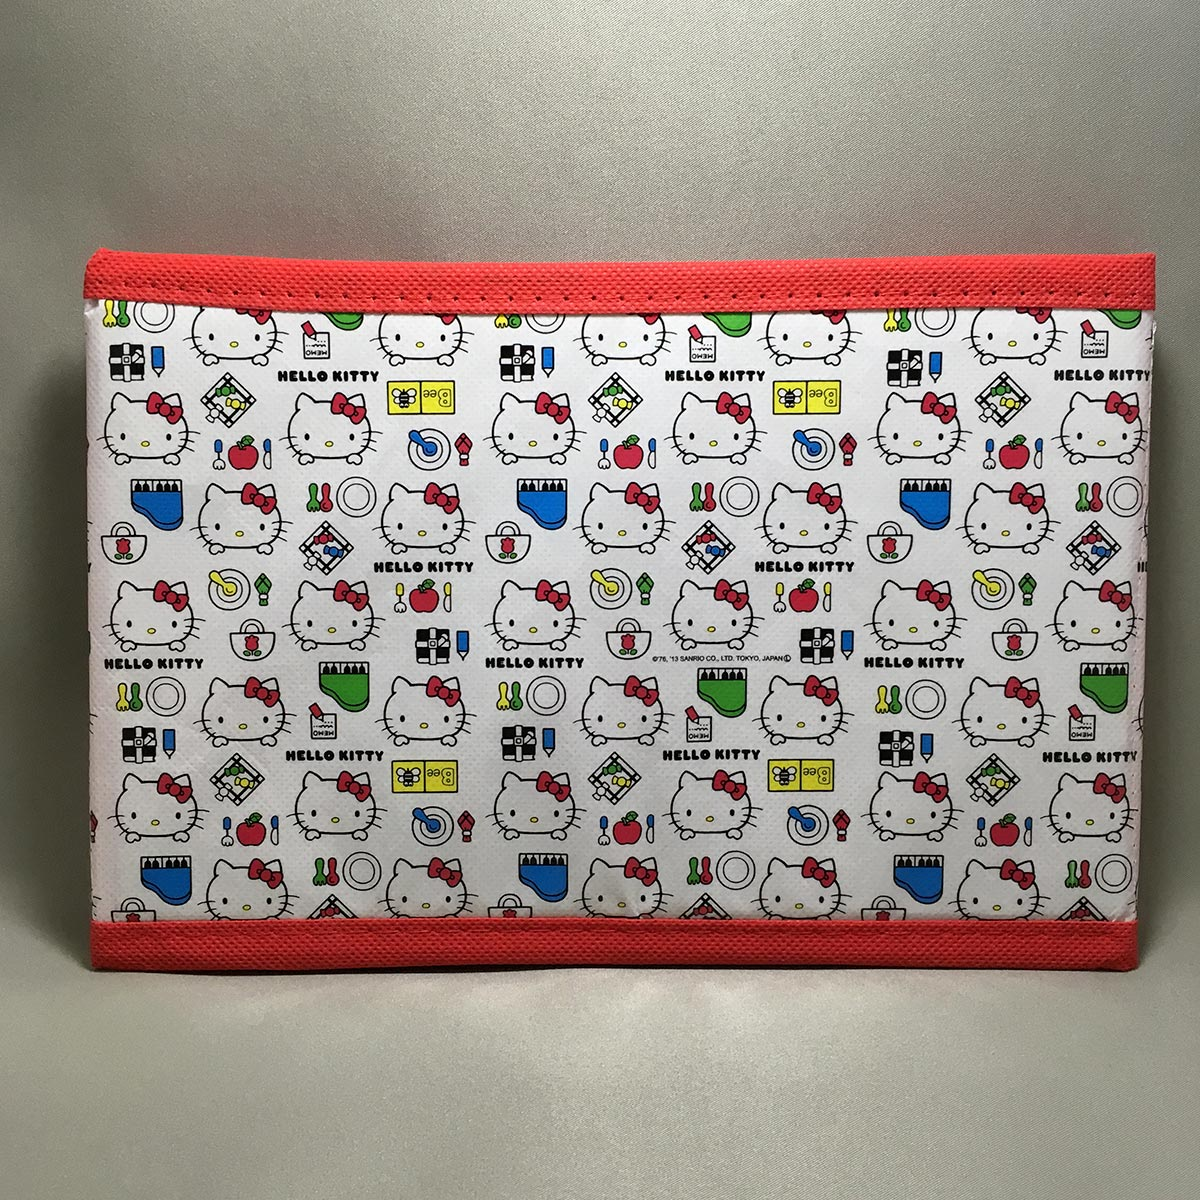 Hello Kitty Foldable Box - side view